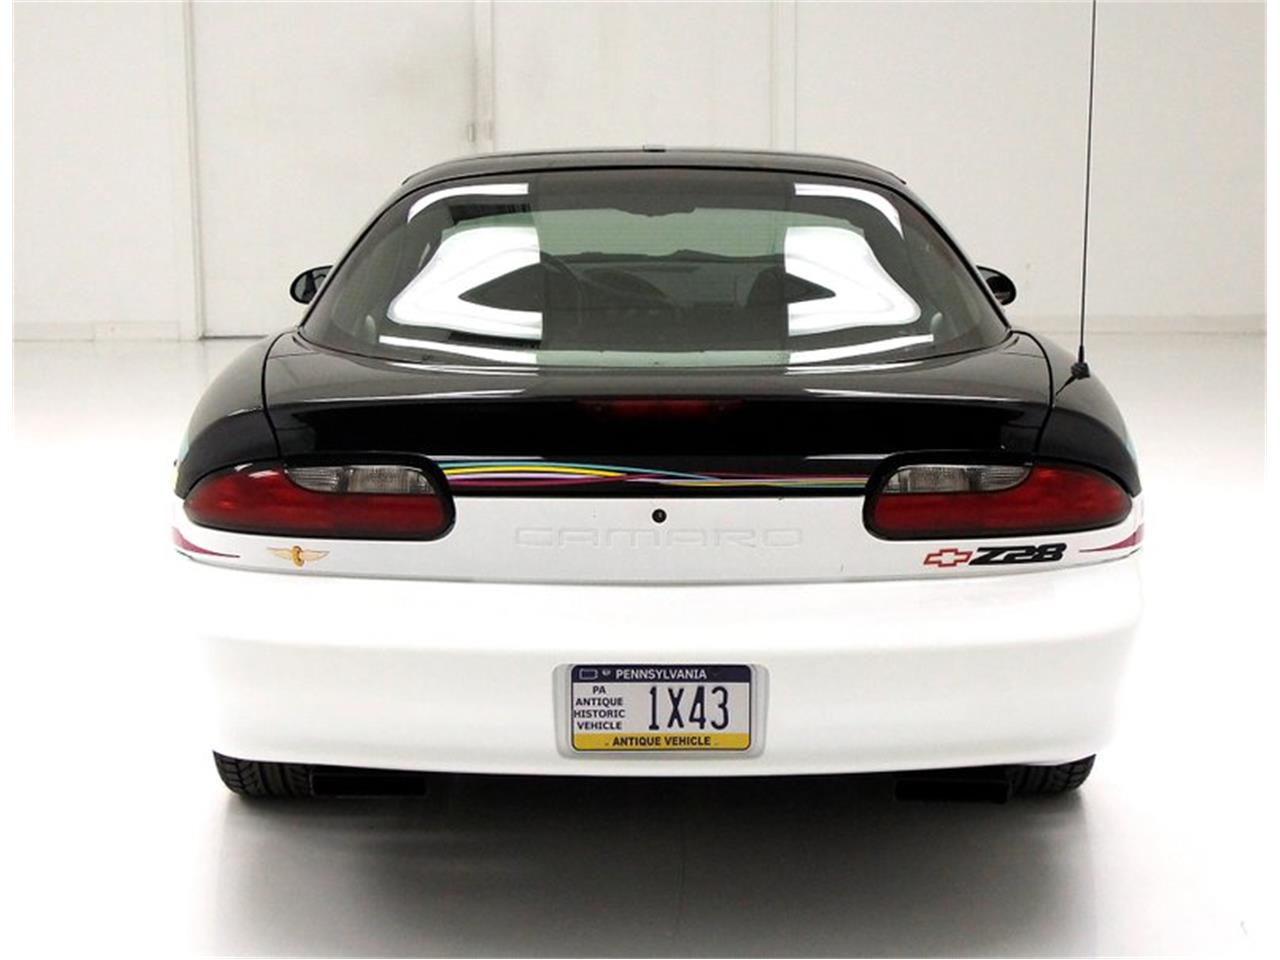 1993 Chevrolet Camaro (CC-1232450) for sale in Morgantown, Pennsylvania